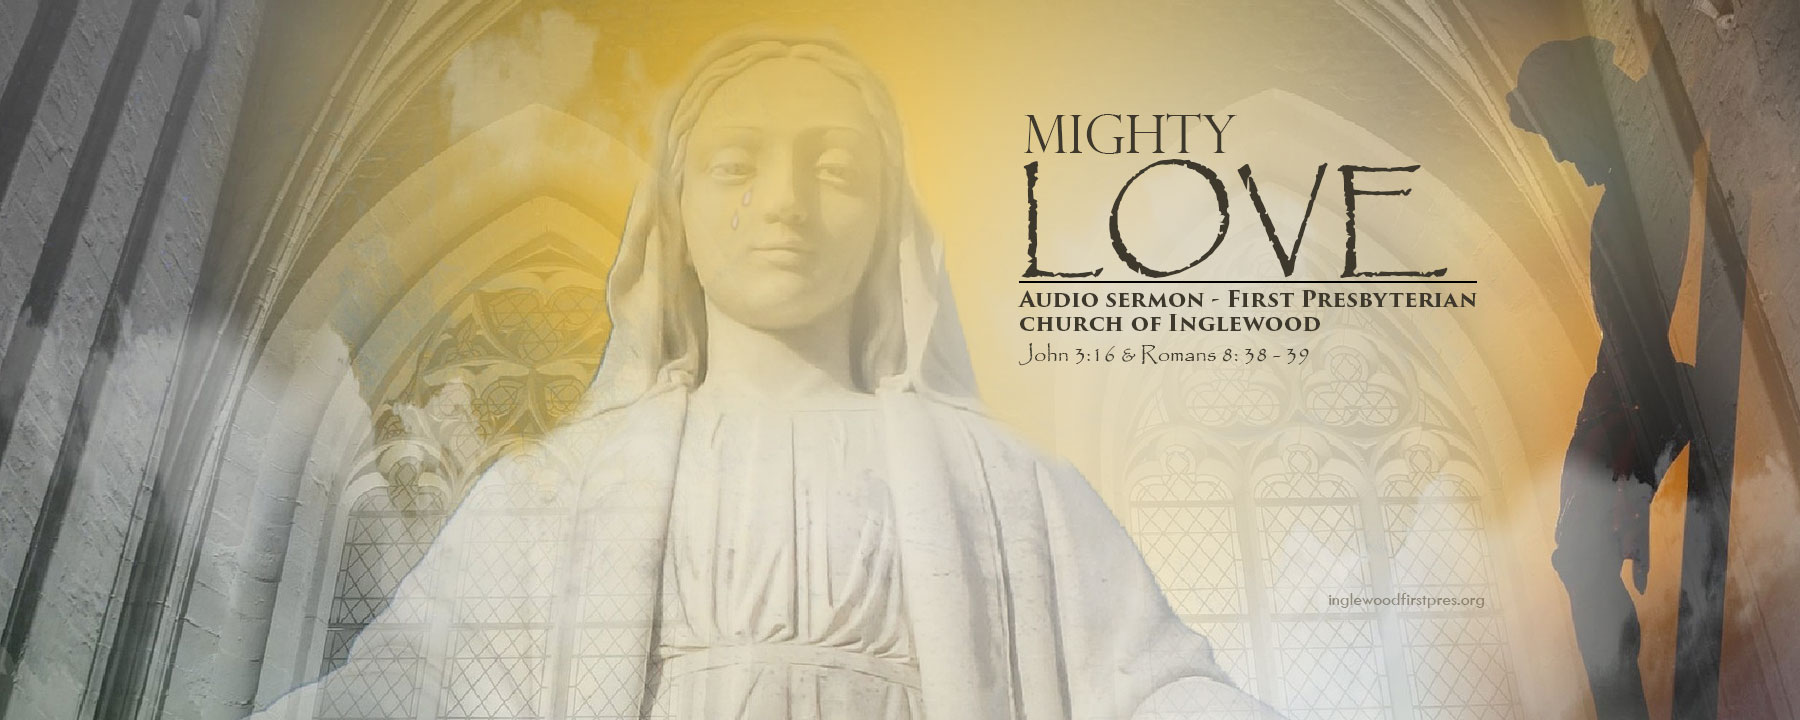 God's mighty love even greater than a Mother's love: Audio Sermon - John 3:16 & Romans 8: 38 - 39